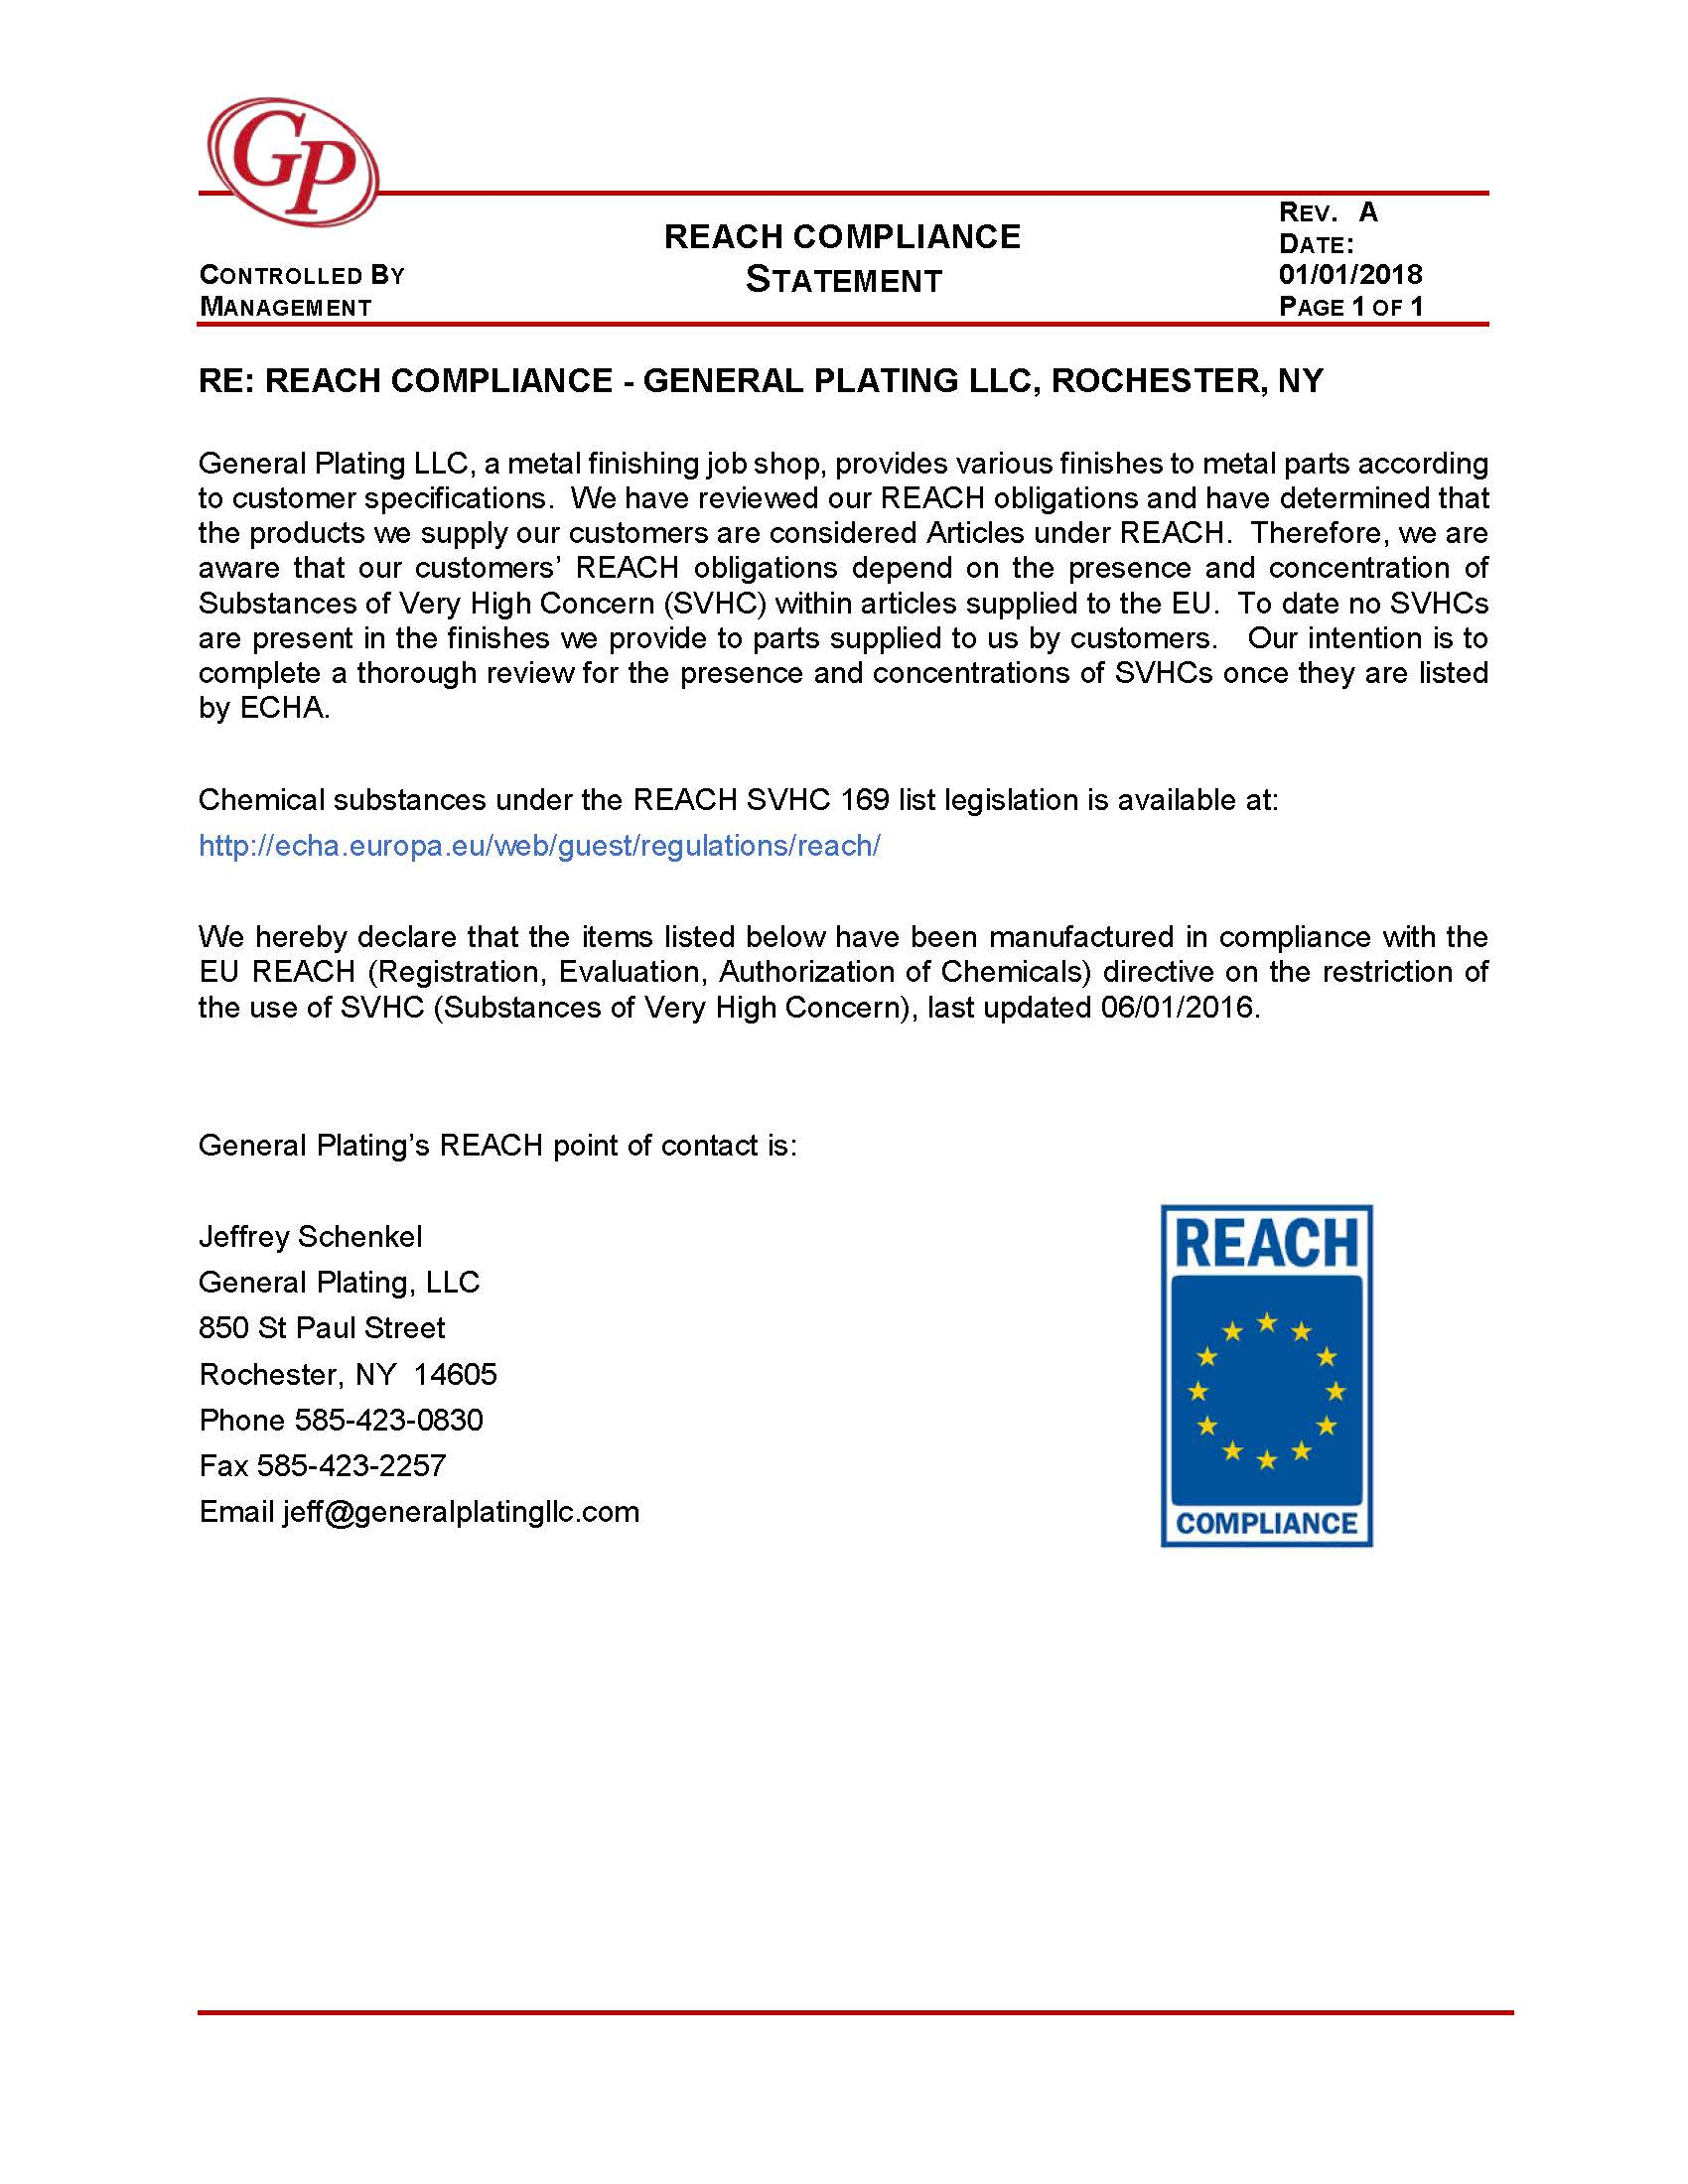 General Plating, LLC REACH compliance form DOWNLOAD